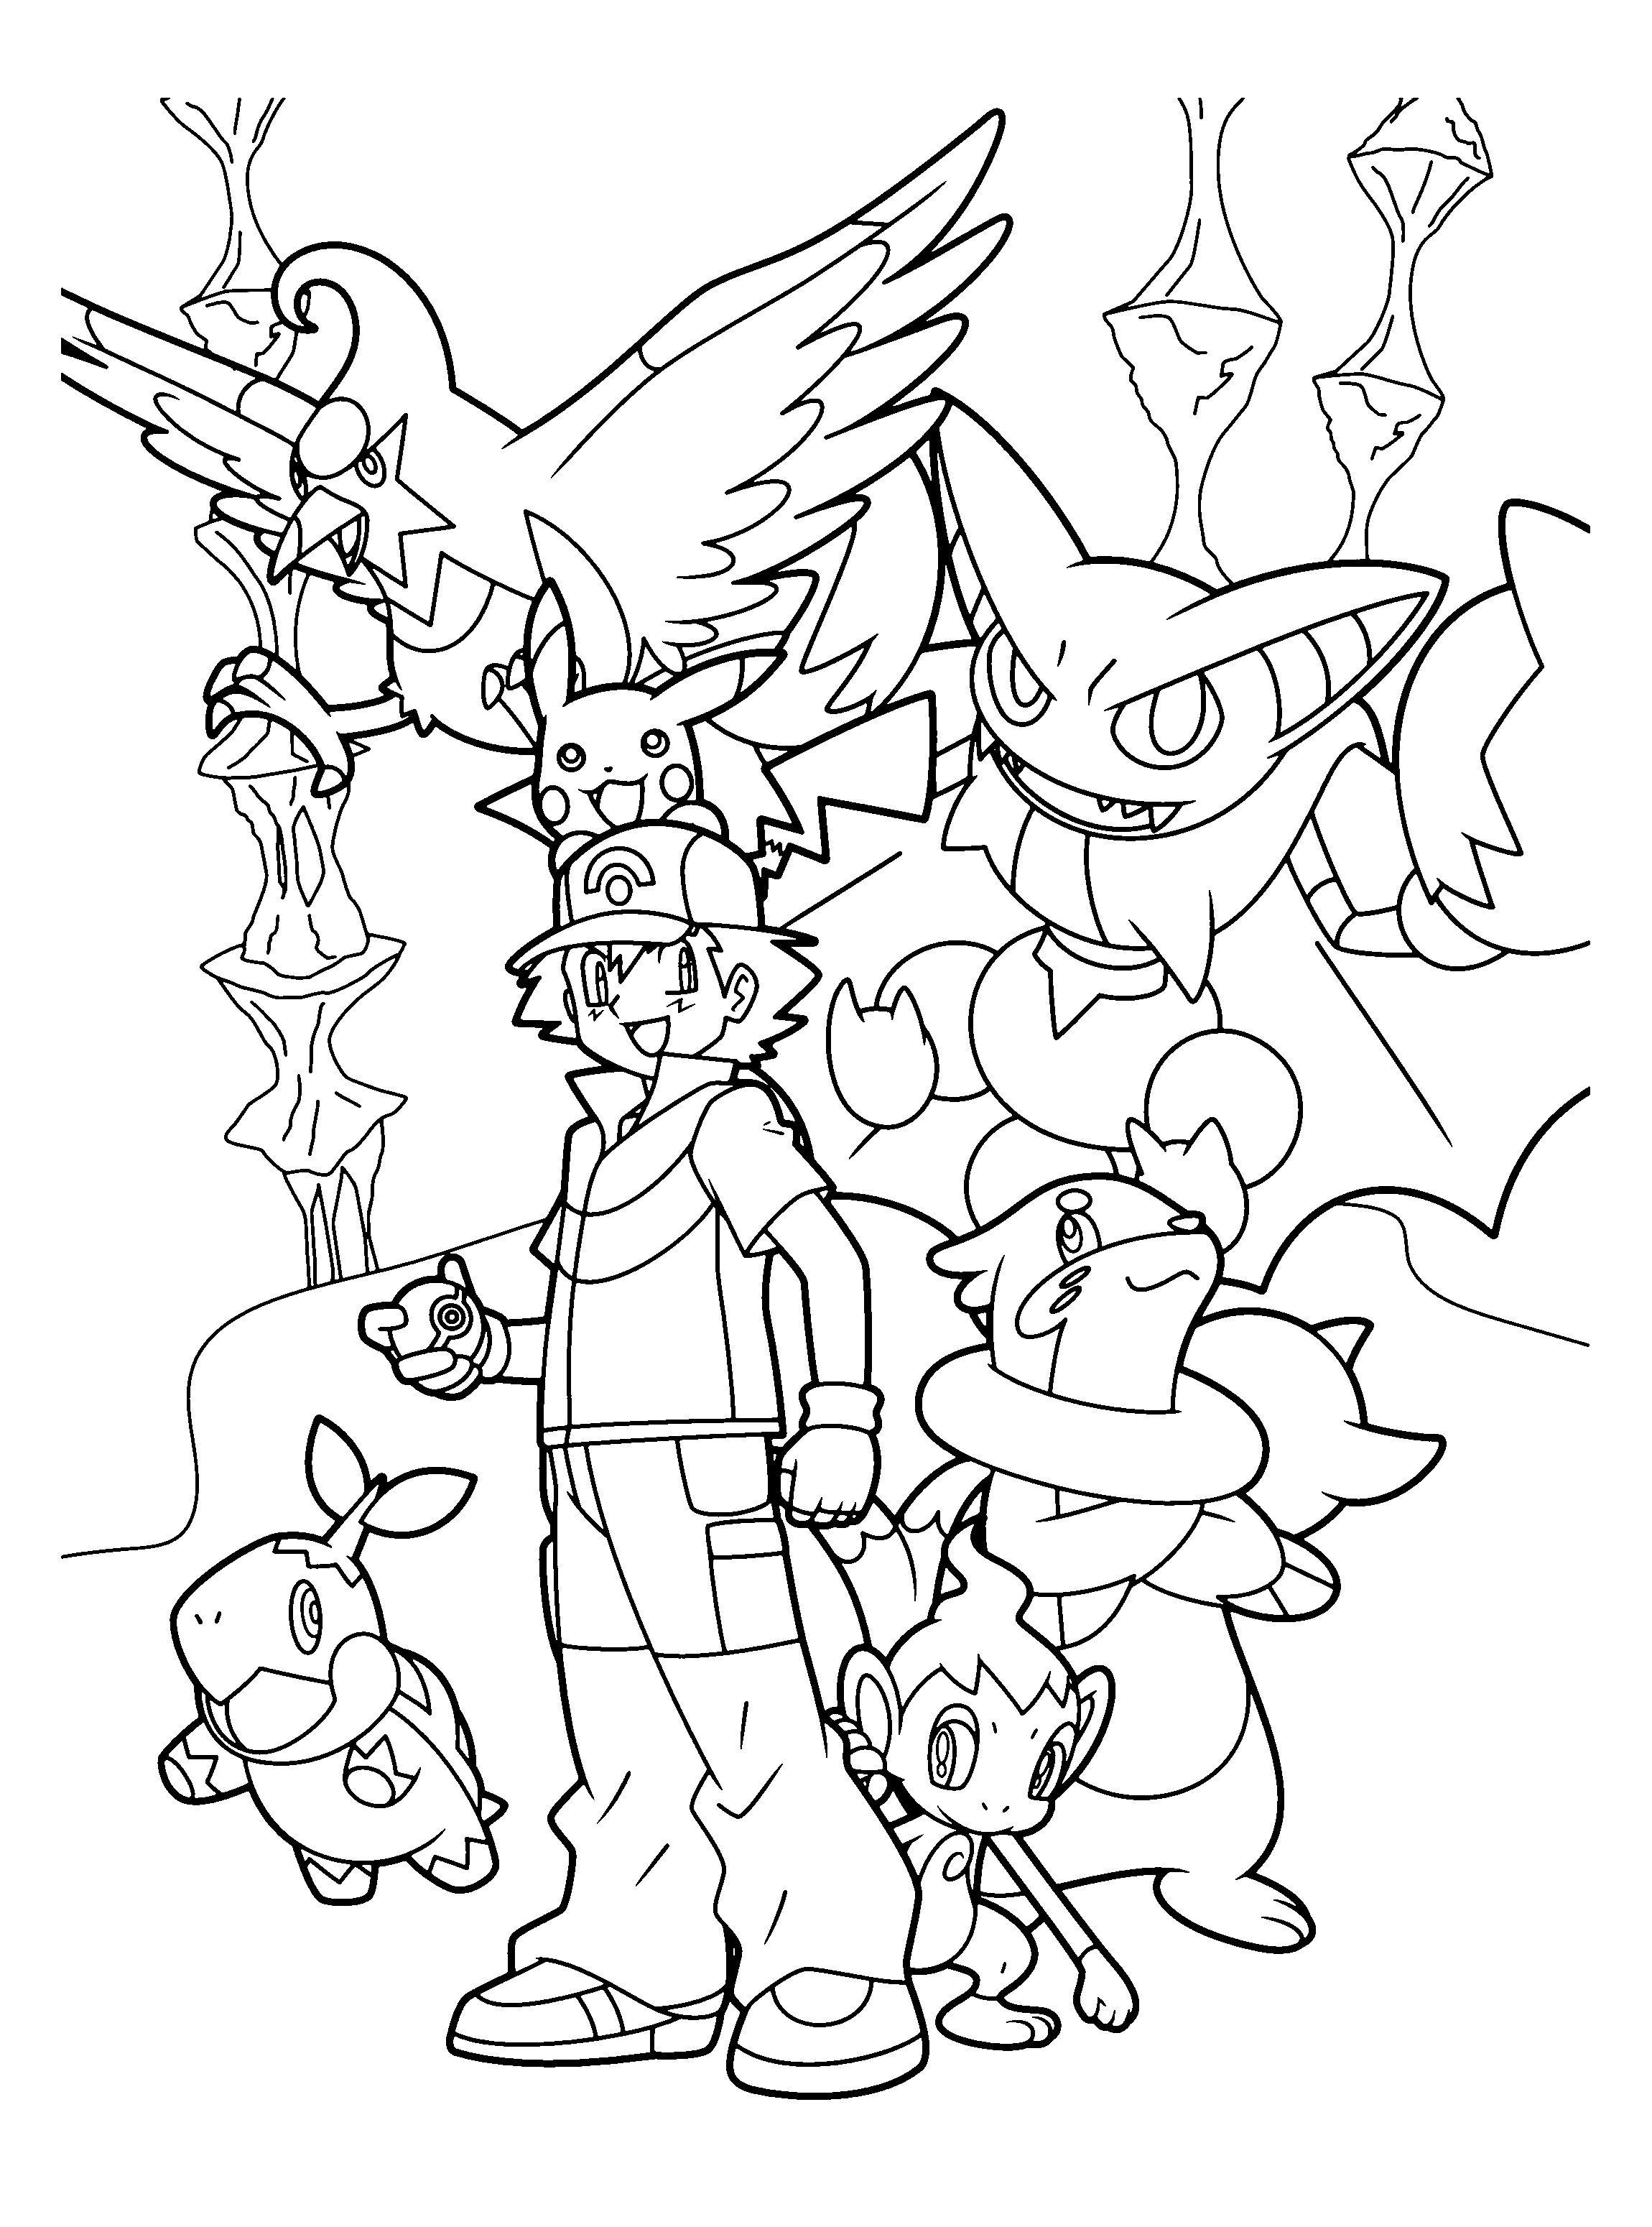 pakemon diamond pearl coloring pages - photo#44